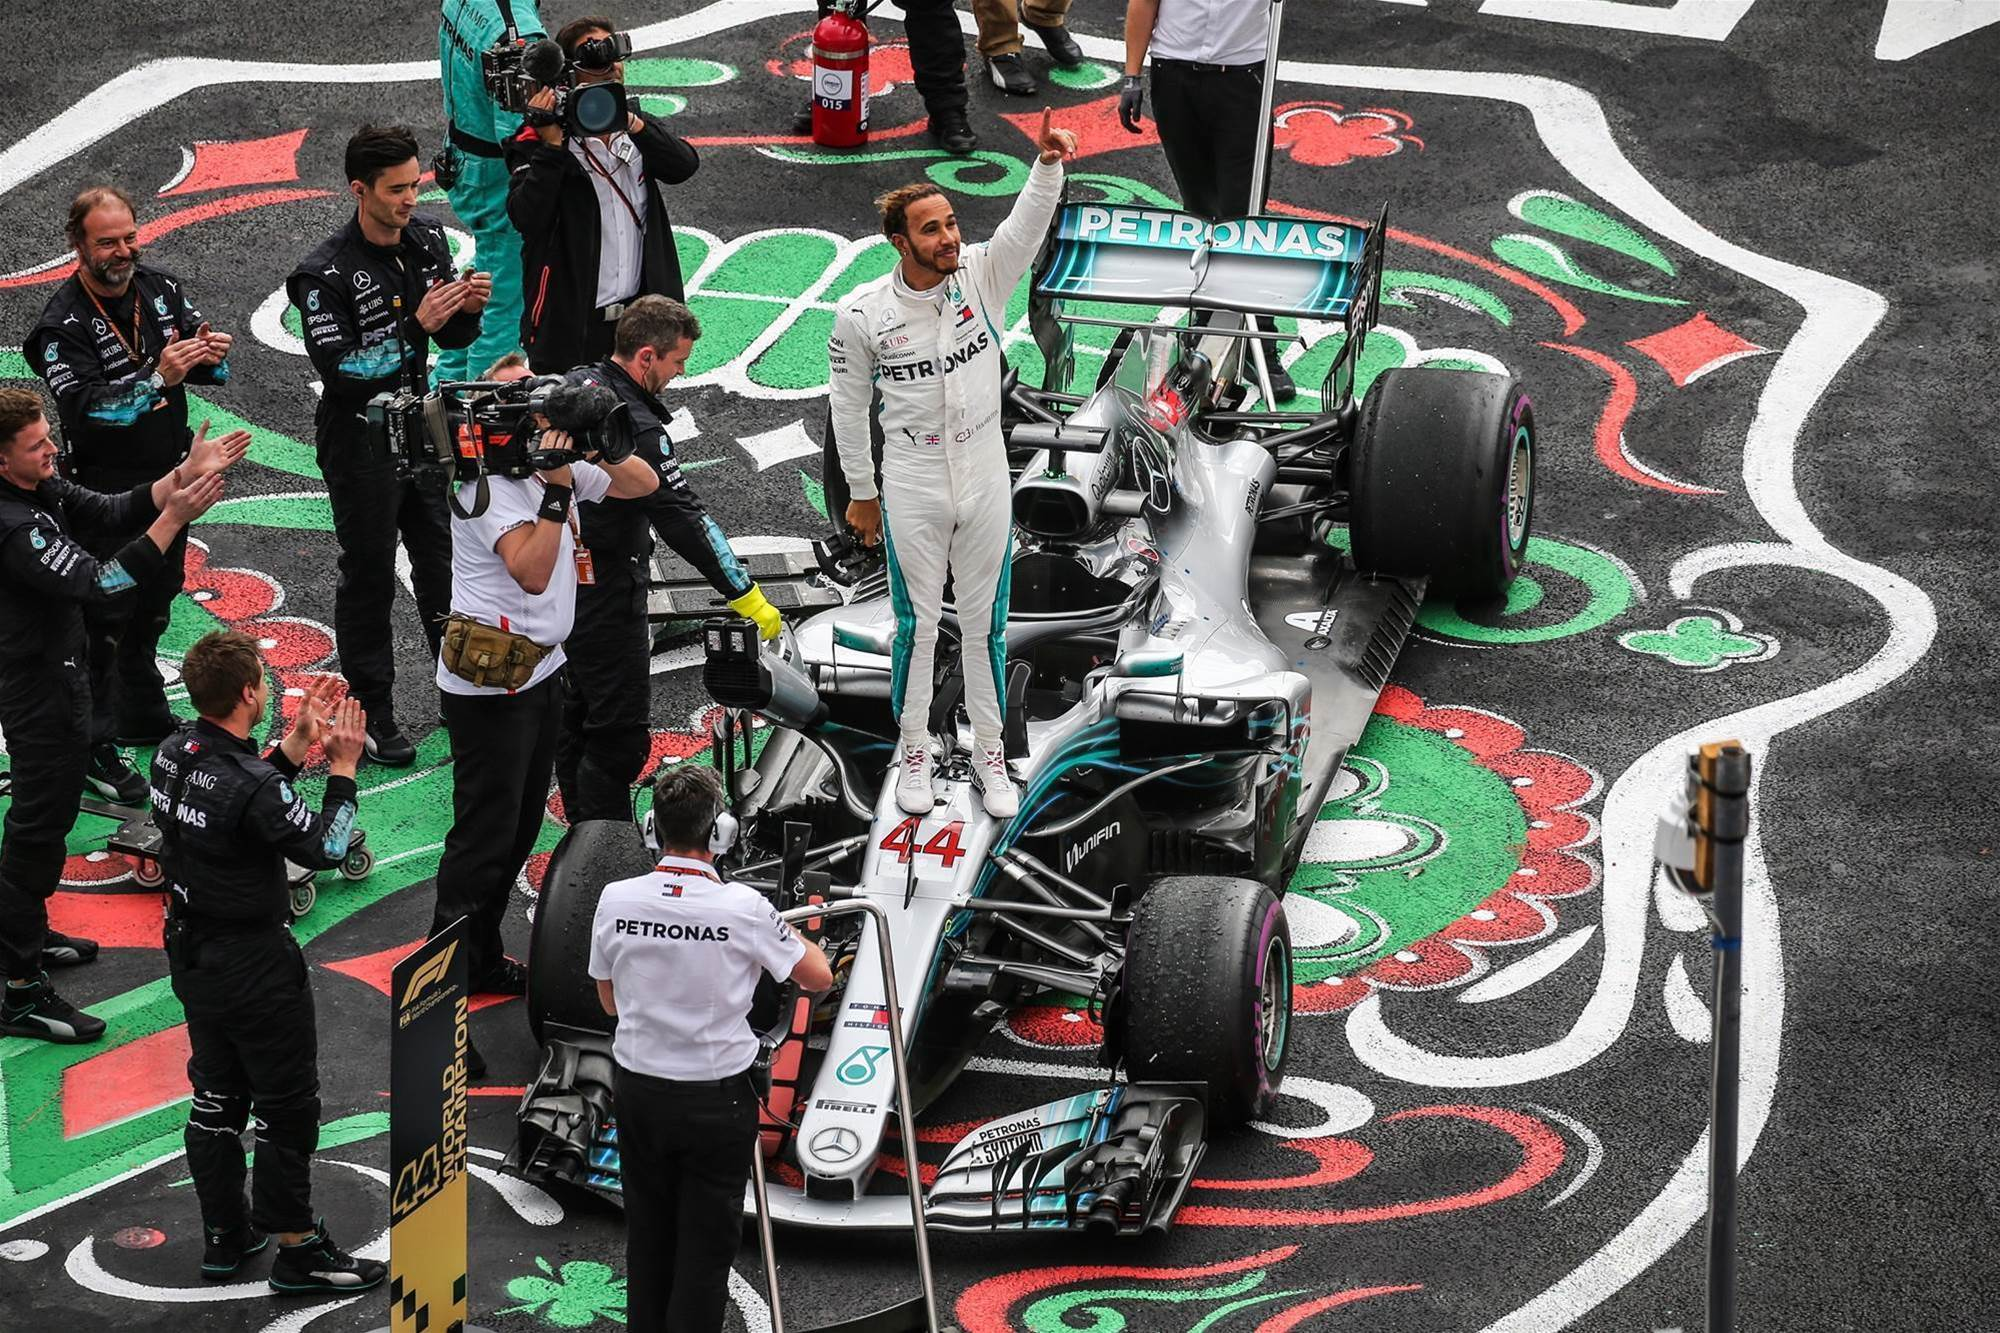 Pic special: Lewis Hamilton's fifth world championship crown